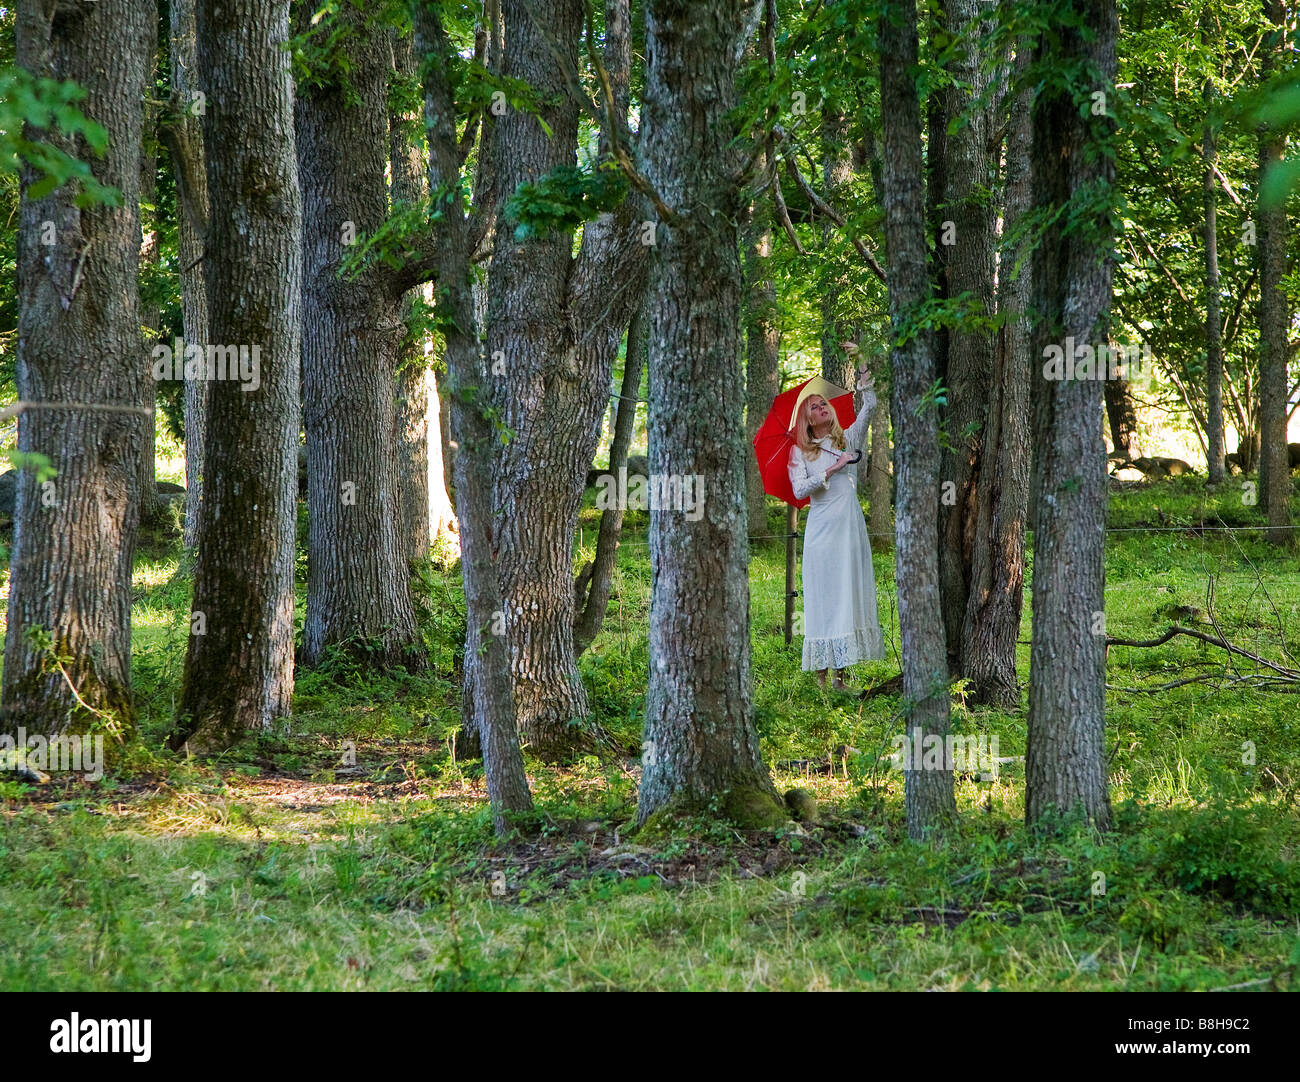 woman with red umbrella in forest Stock Photo